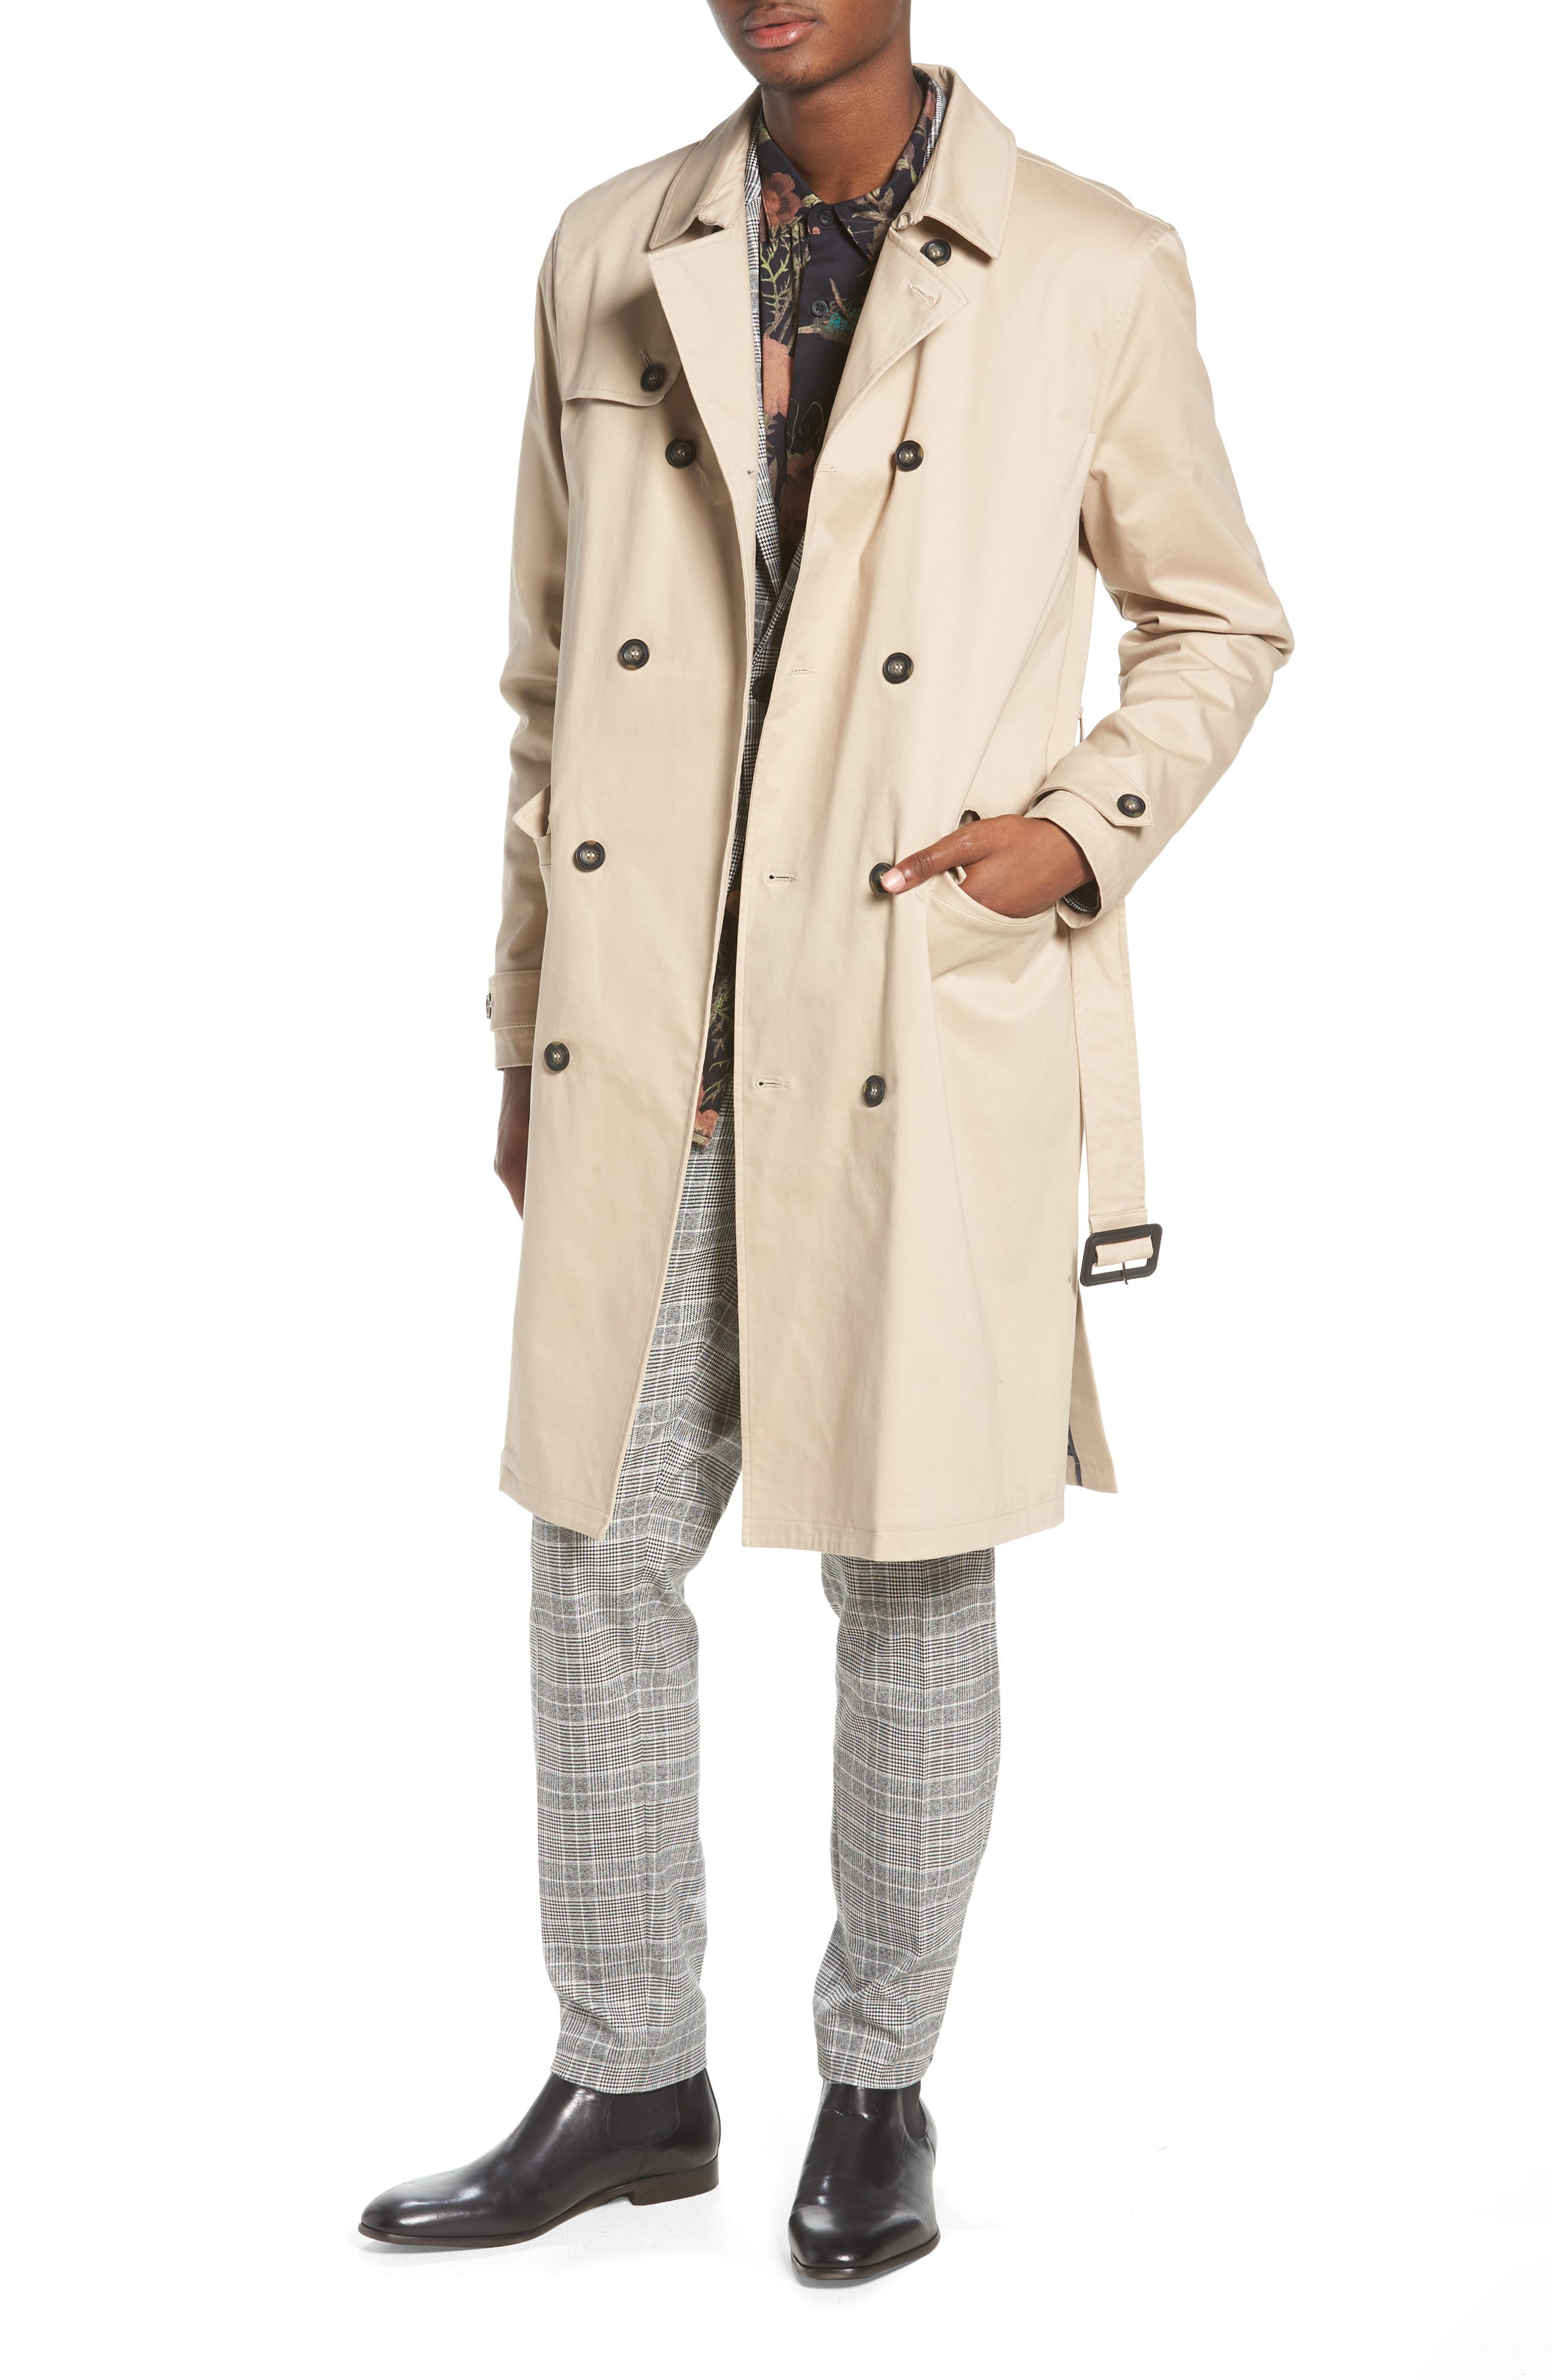 60s 70s Men's Jackets & Sweaters Mens Topman Peached Trench Coat Size X-Small - Beige $64.99 AT vintagedancer.com